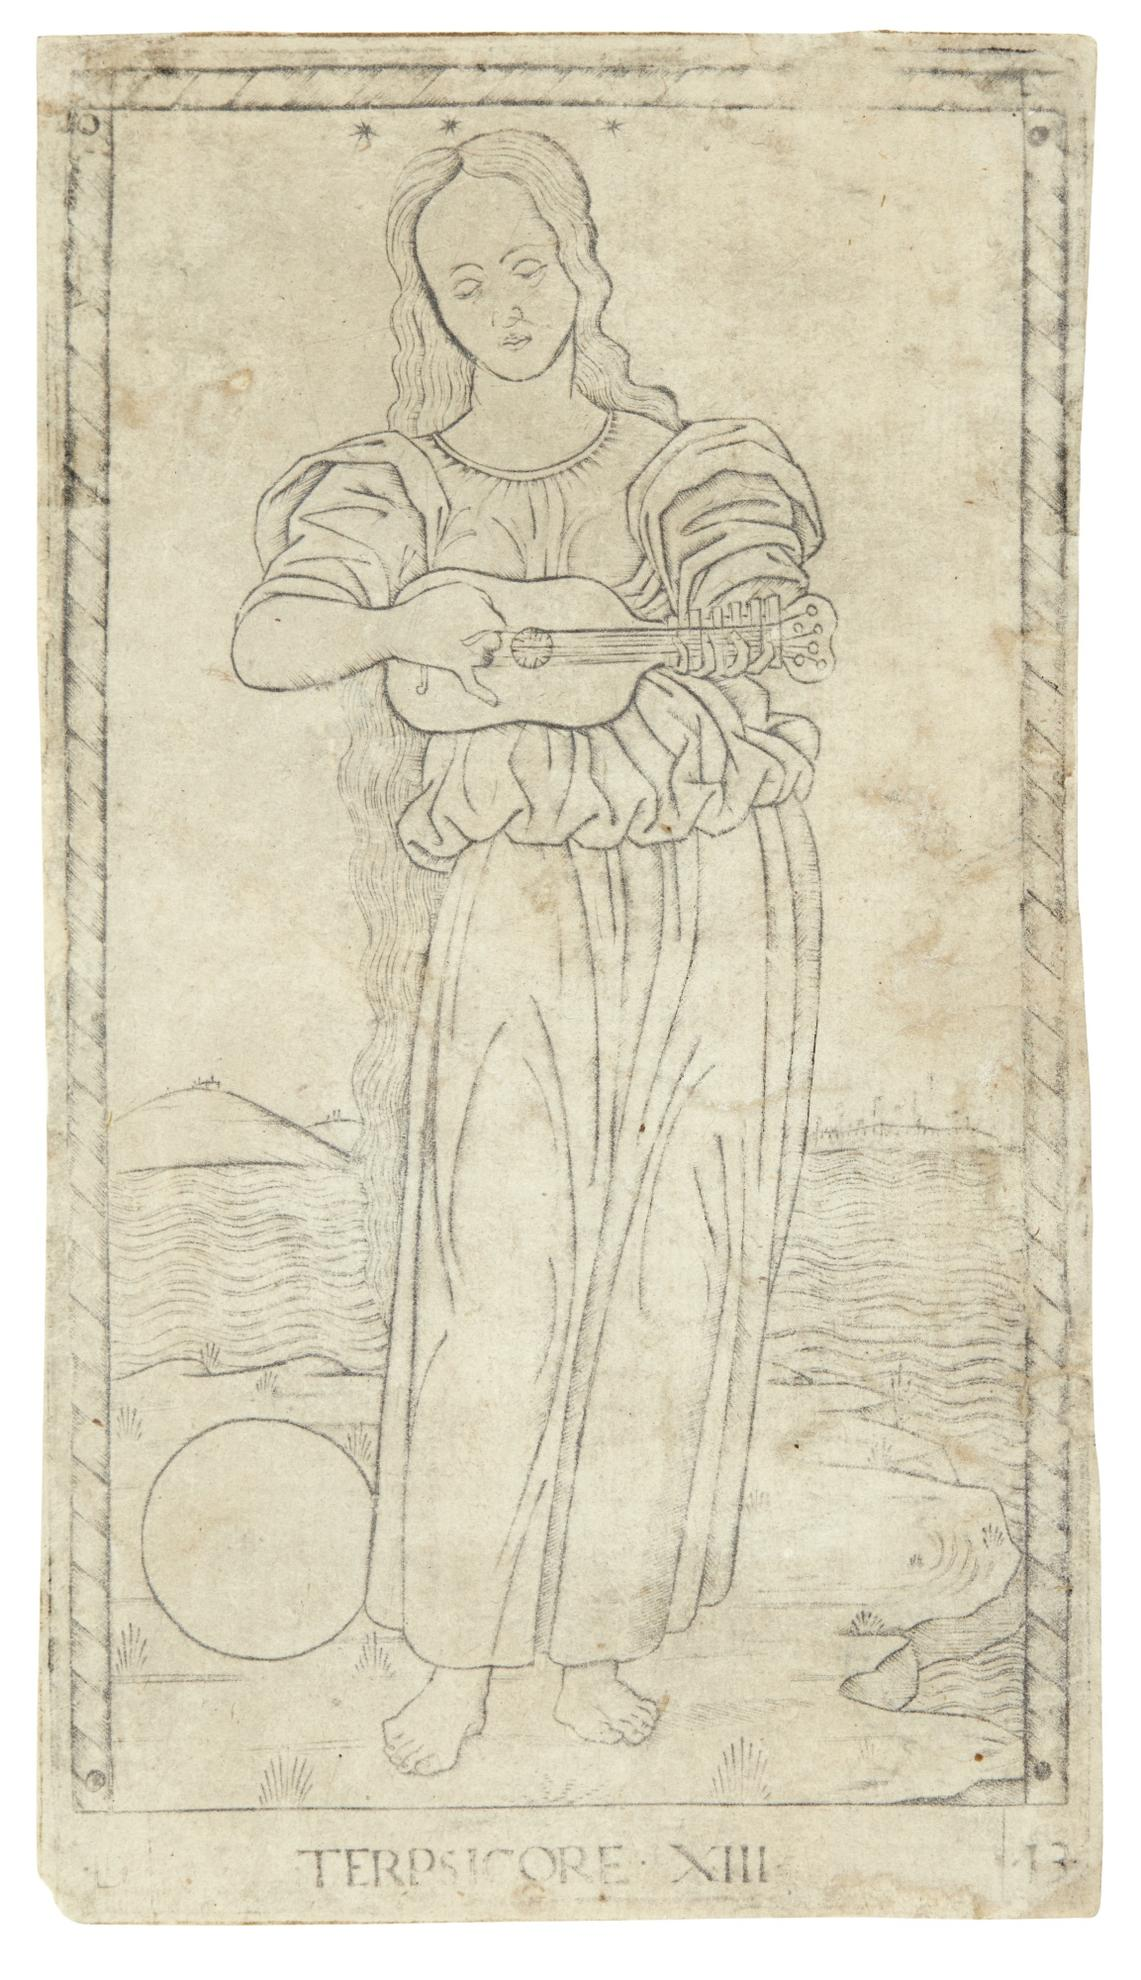 An Anonymous Northern Italian Master - Terpsichore (Terpsicore Xiii) (Bartsch 30-A; Hind E.I.13A)-1467